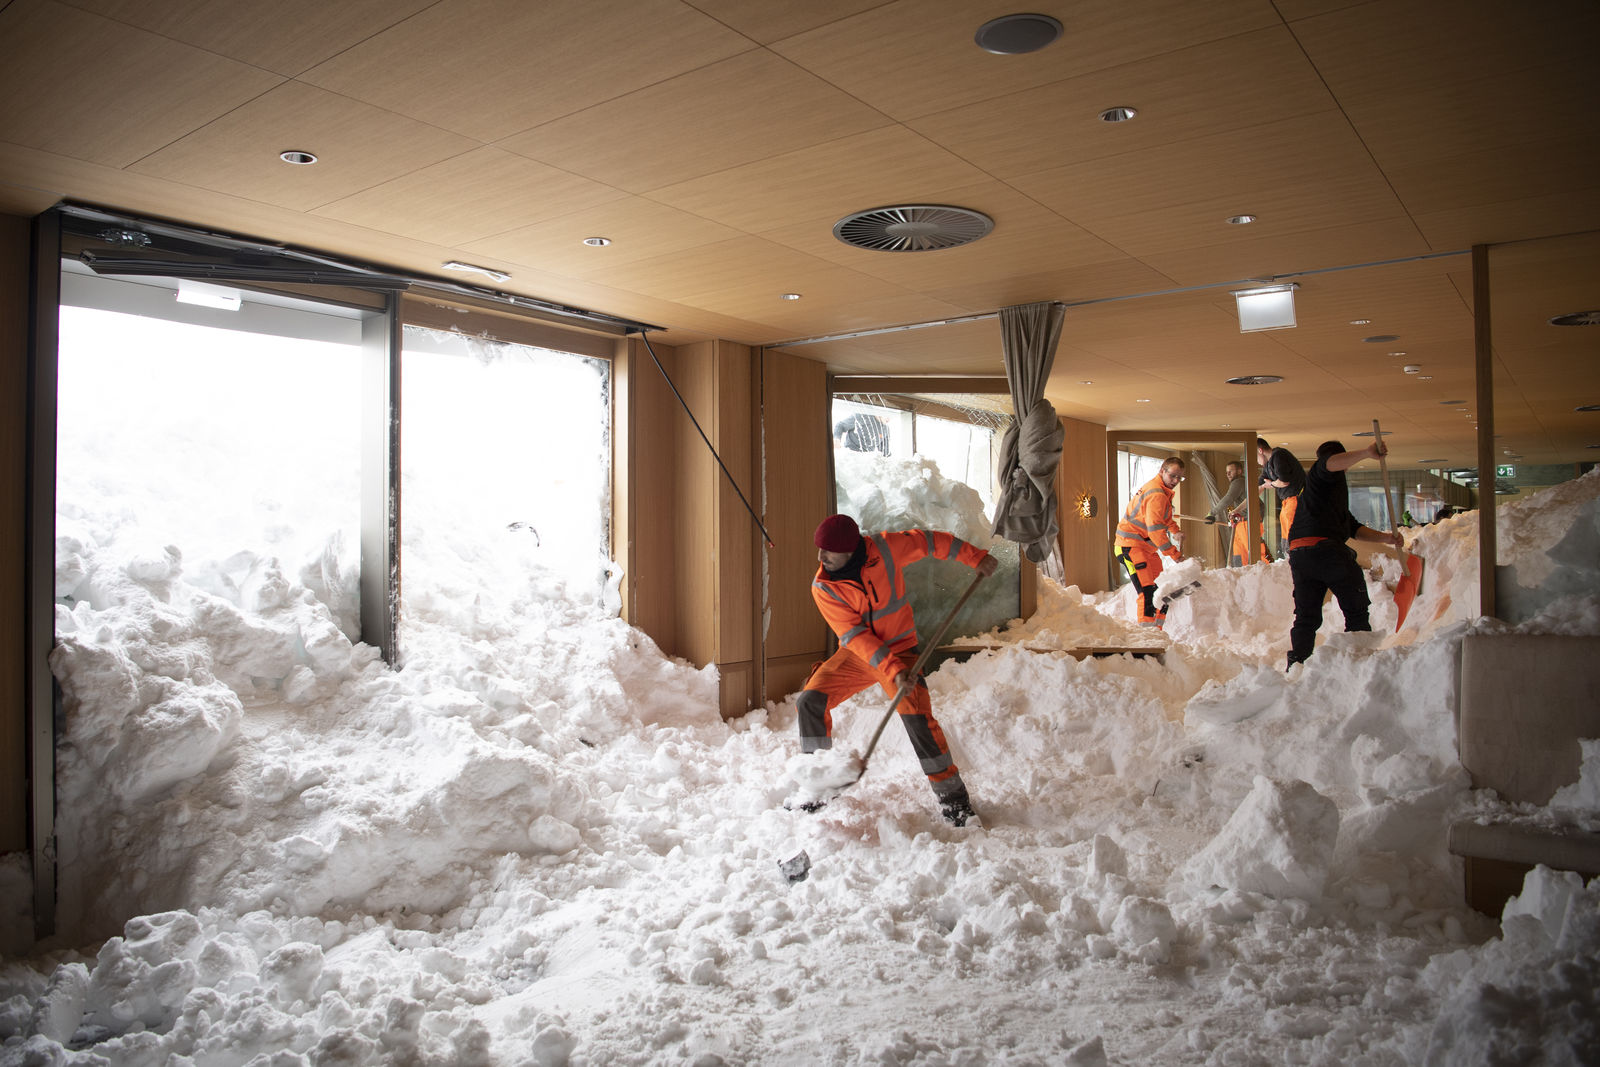 People clear snow from inside the Hotel Saentis in Schwaegalp, Switzerland,, Switzerland, Friday Jan. 11. (Gian Ehrenzeller/Keystone via AP)